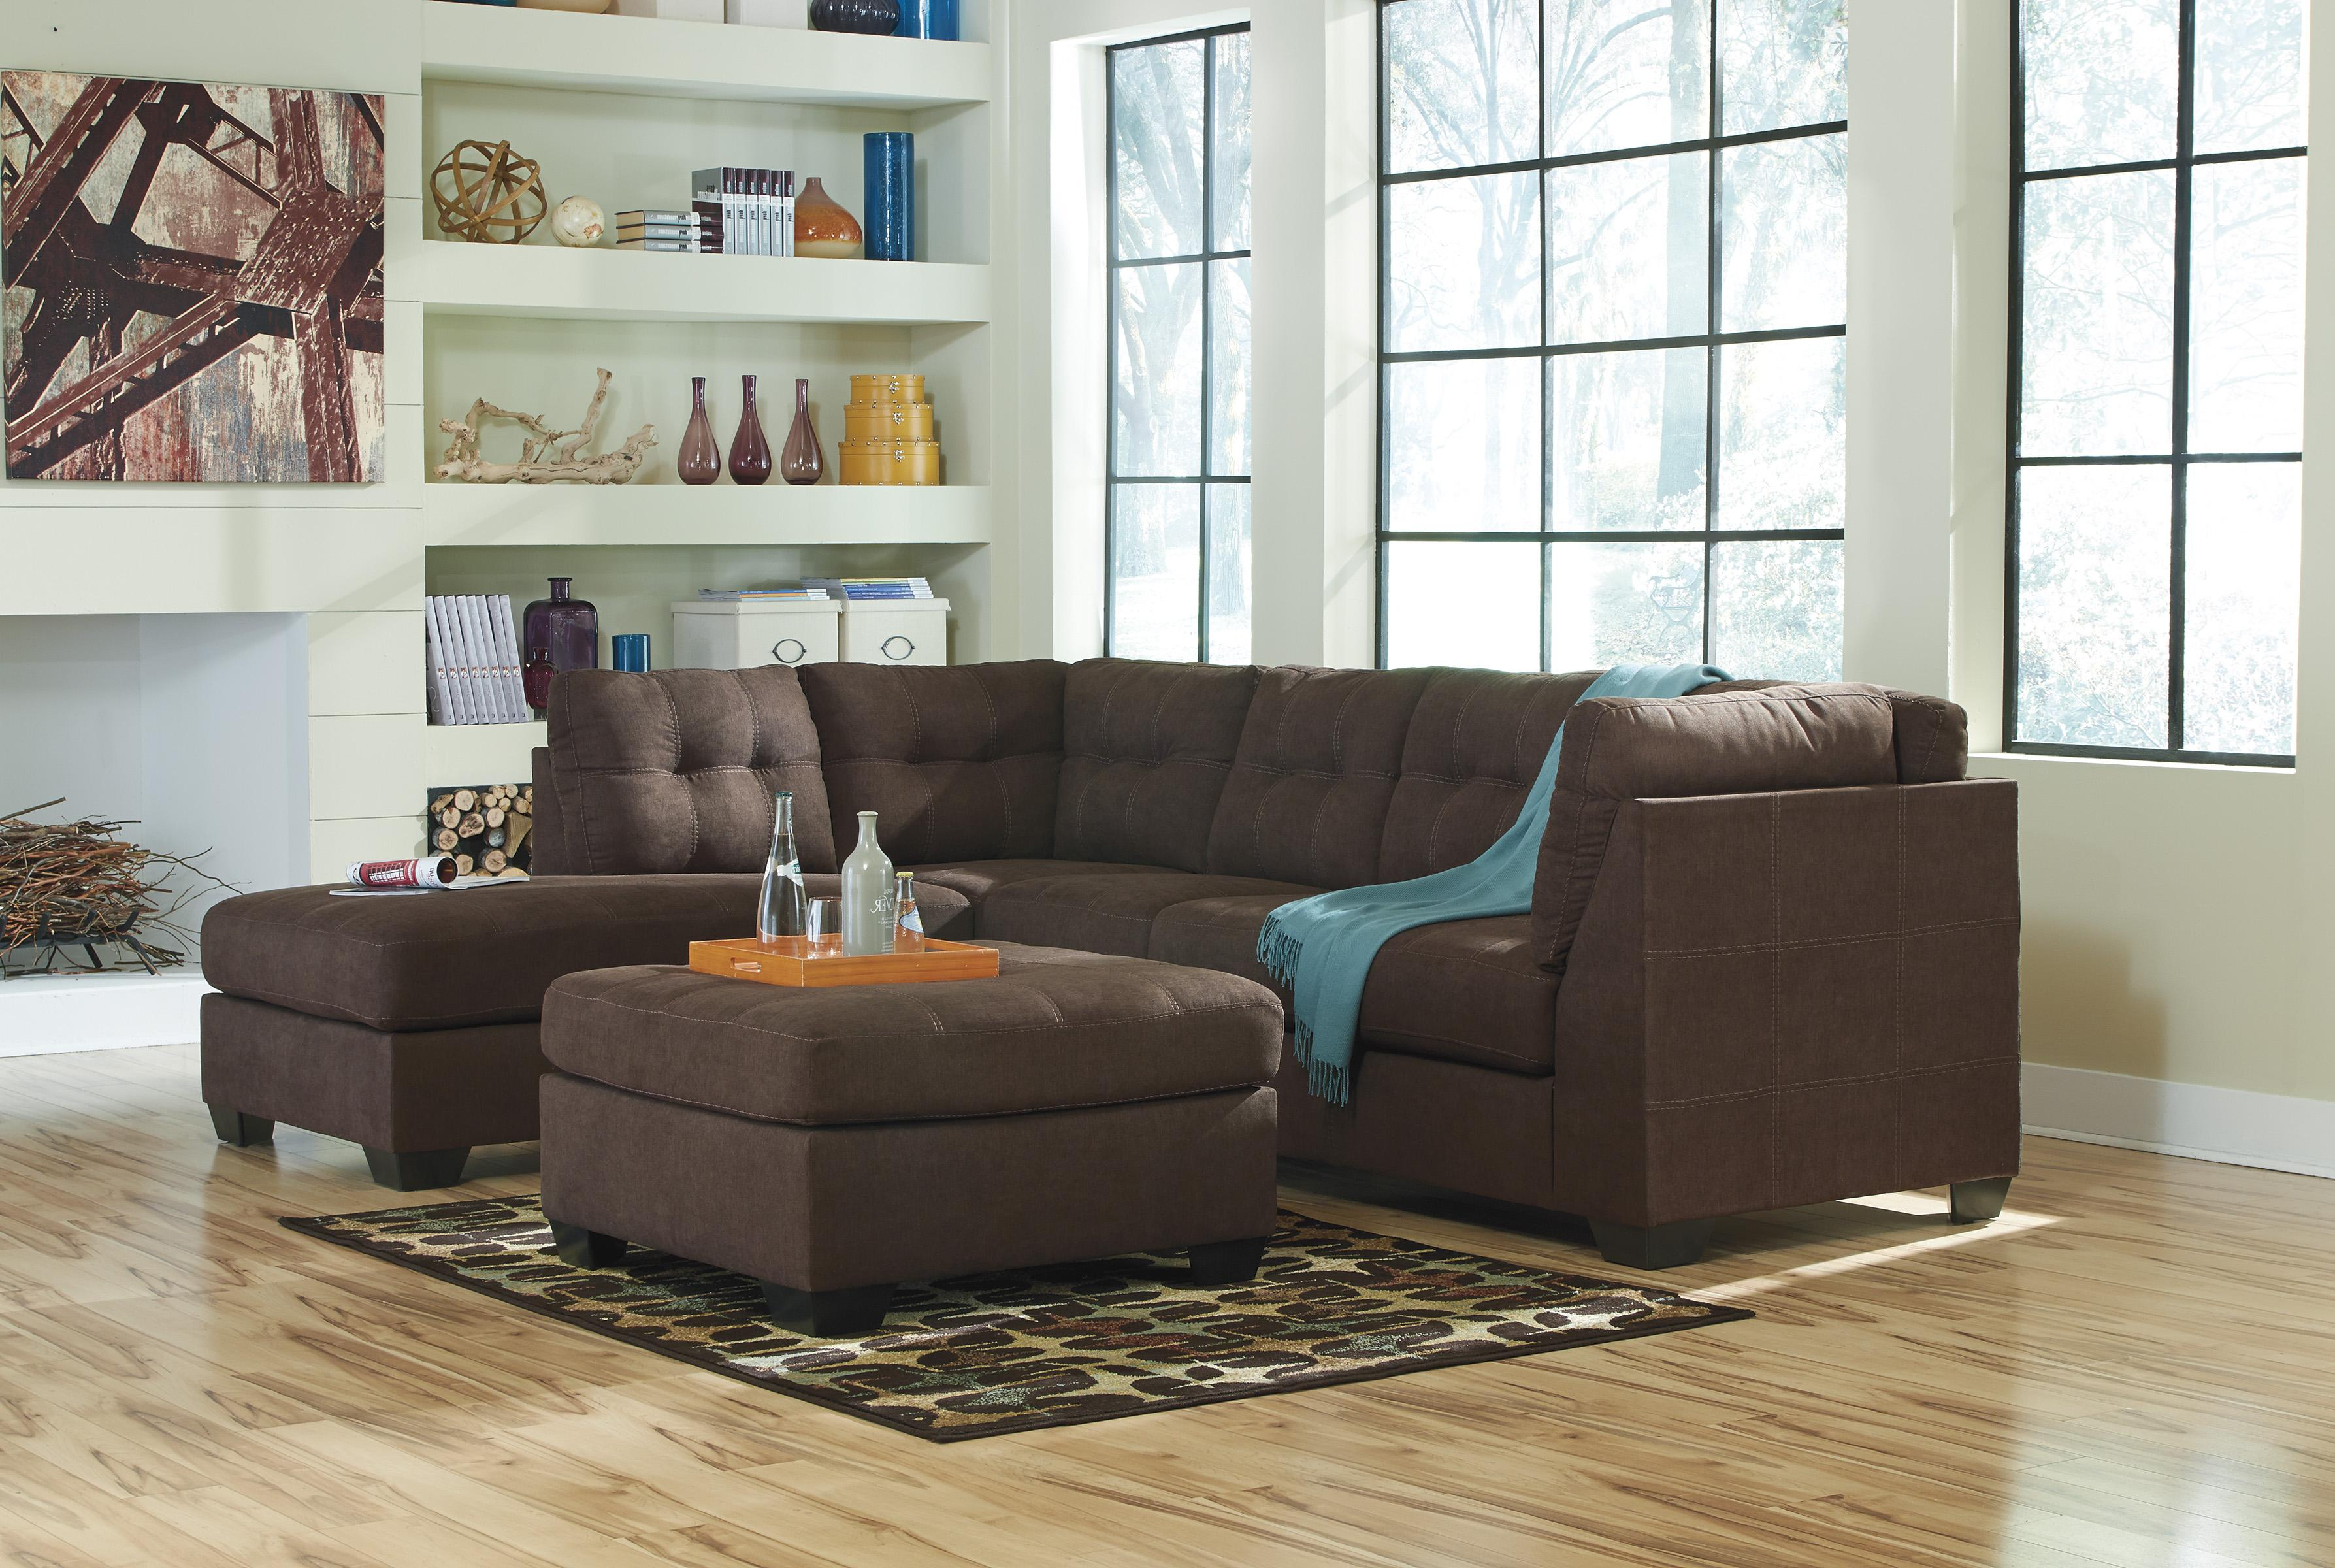 Benchcraft Maier - Walnut Stationary Living Room Group - Item Number: 45201 Living Room Group 2